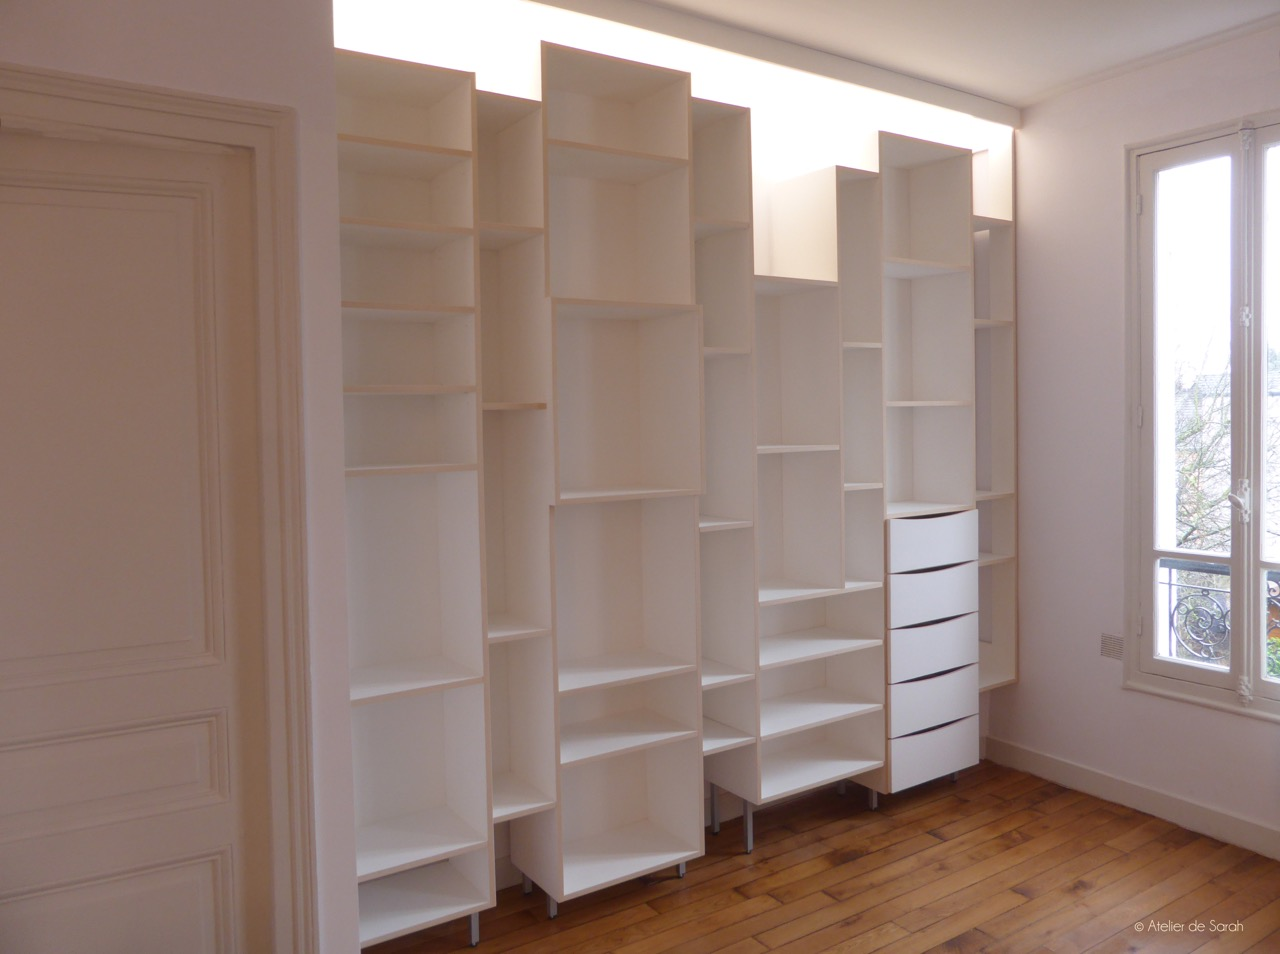 skyline-bookshelving-with-indirect-LED-lighting-to-highlight-horizontal-silhouette